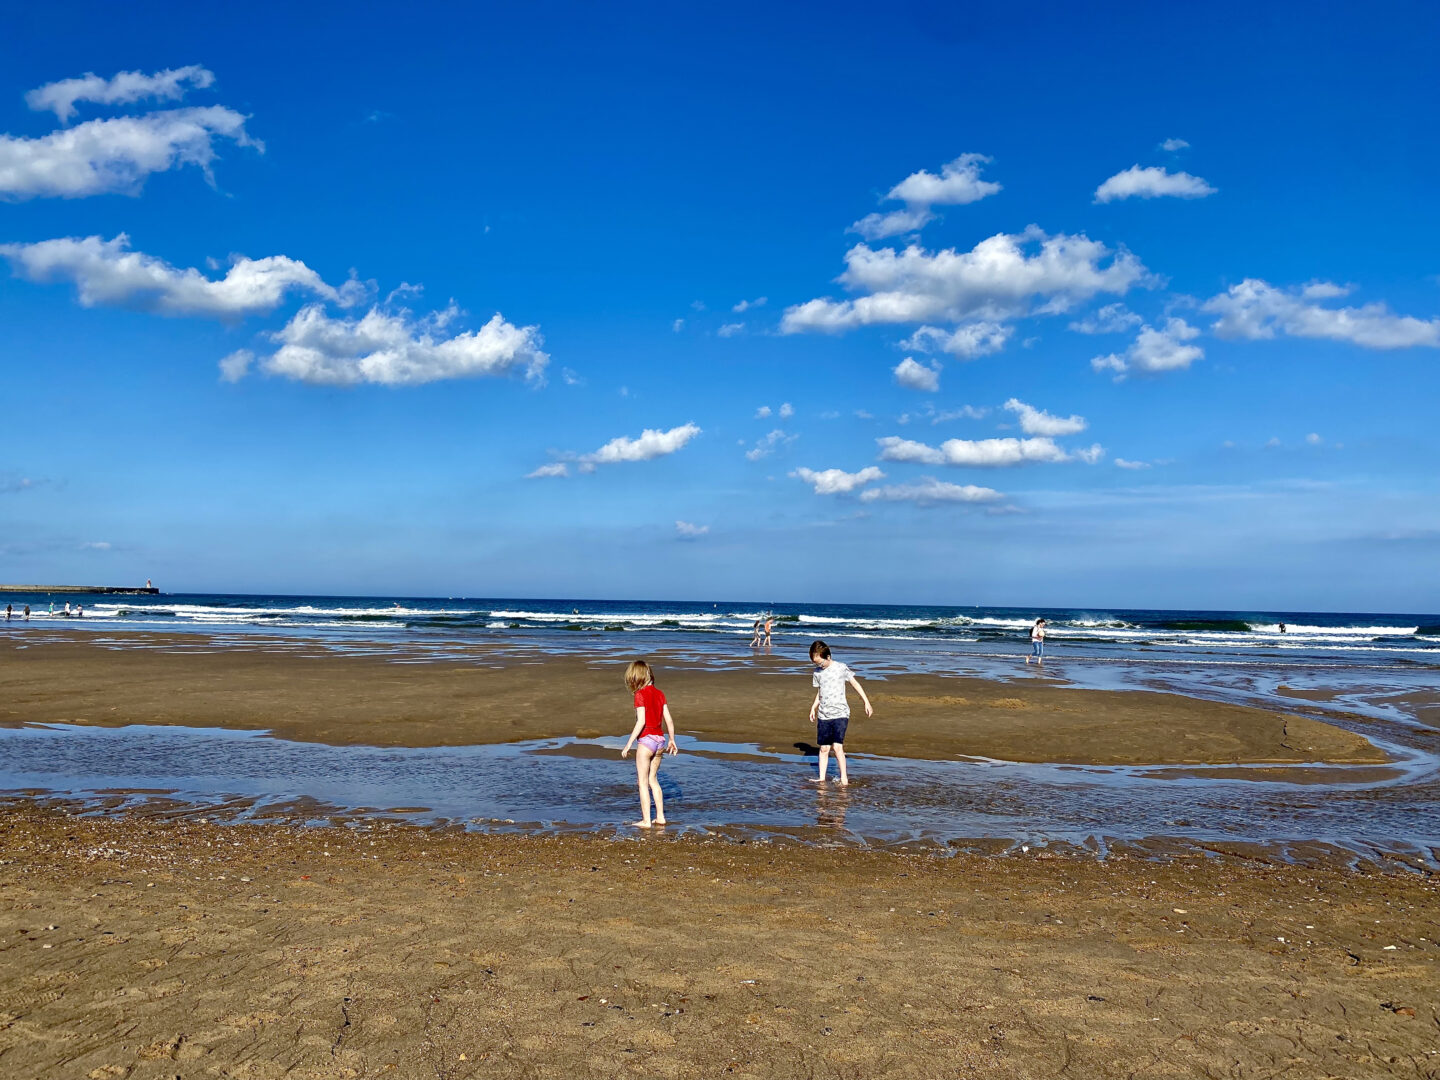 2 children playing on a beach